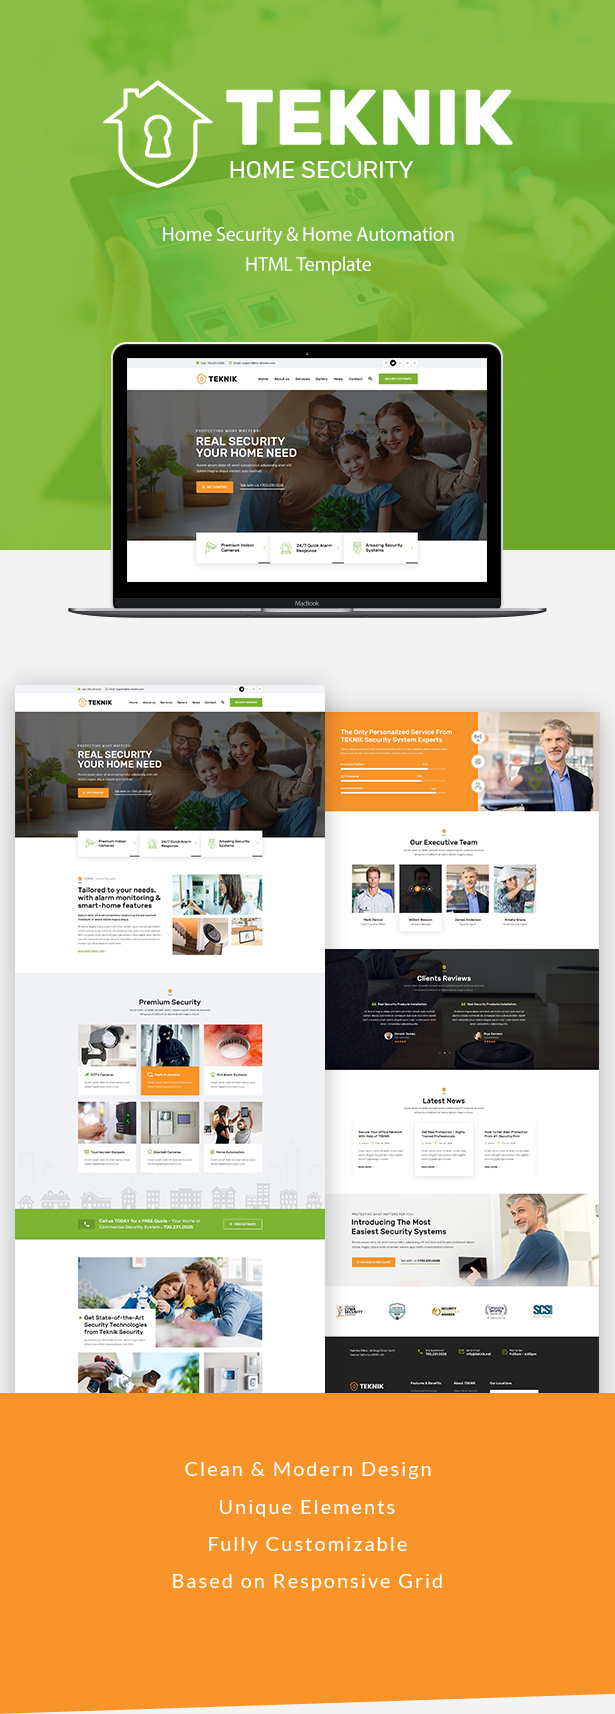 Teknik - Security Services HTML Template - 1